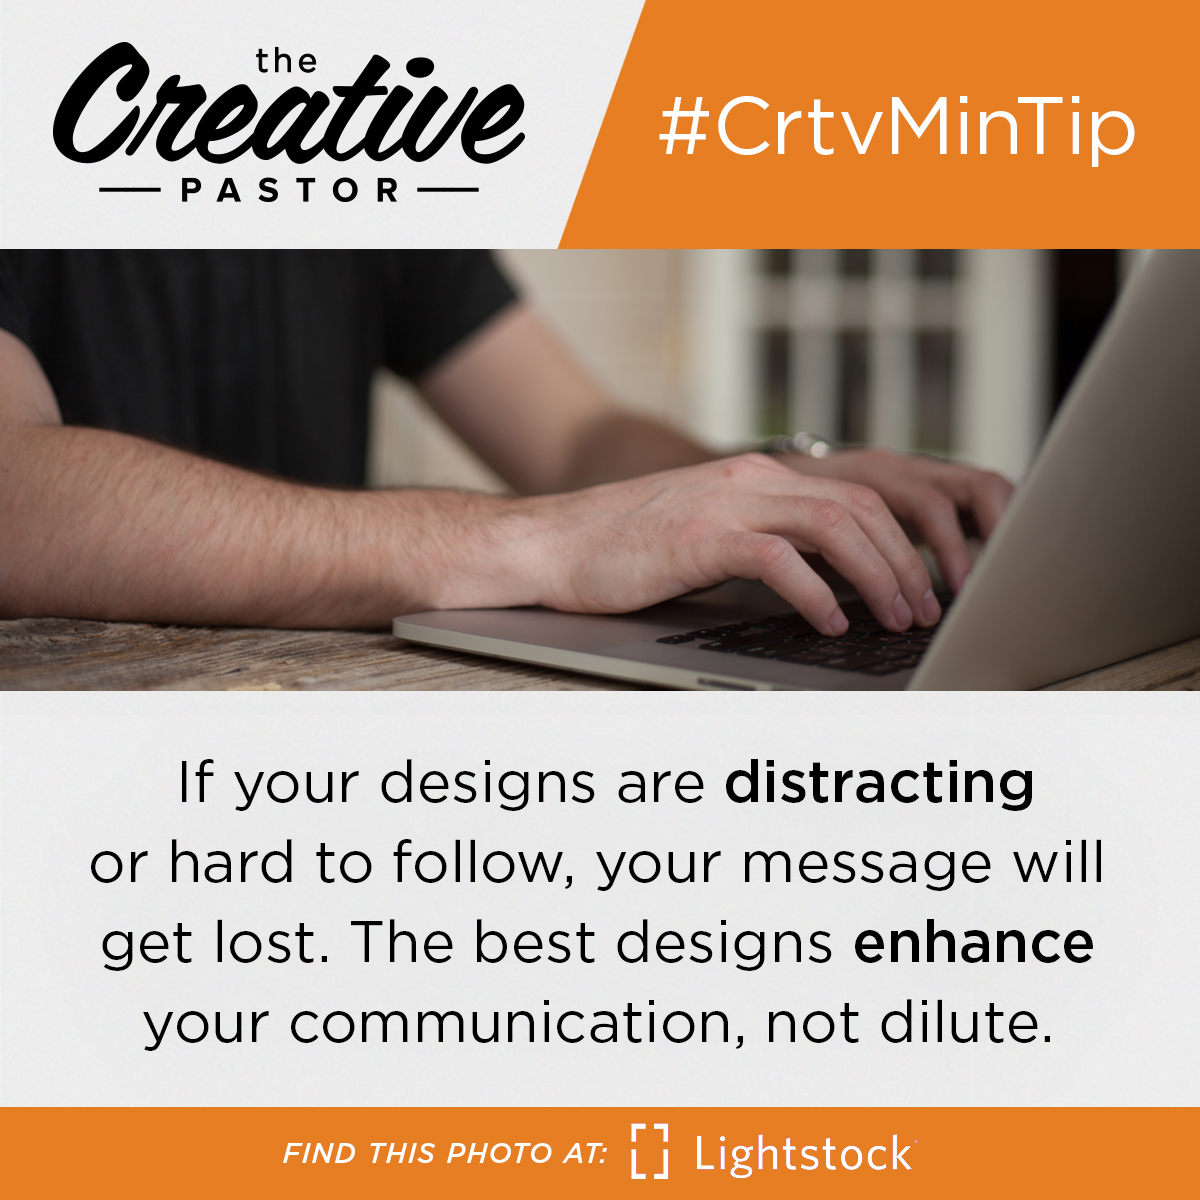 #CrtvMinTip: If your designs are distracting or hard to follow, your message will get lost. The best designs enhance your communication, not dilute.